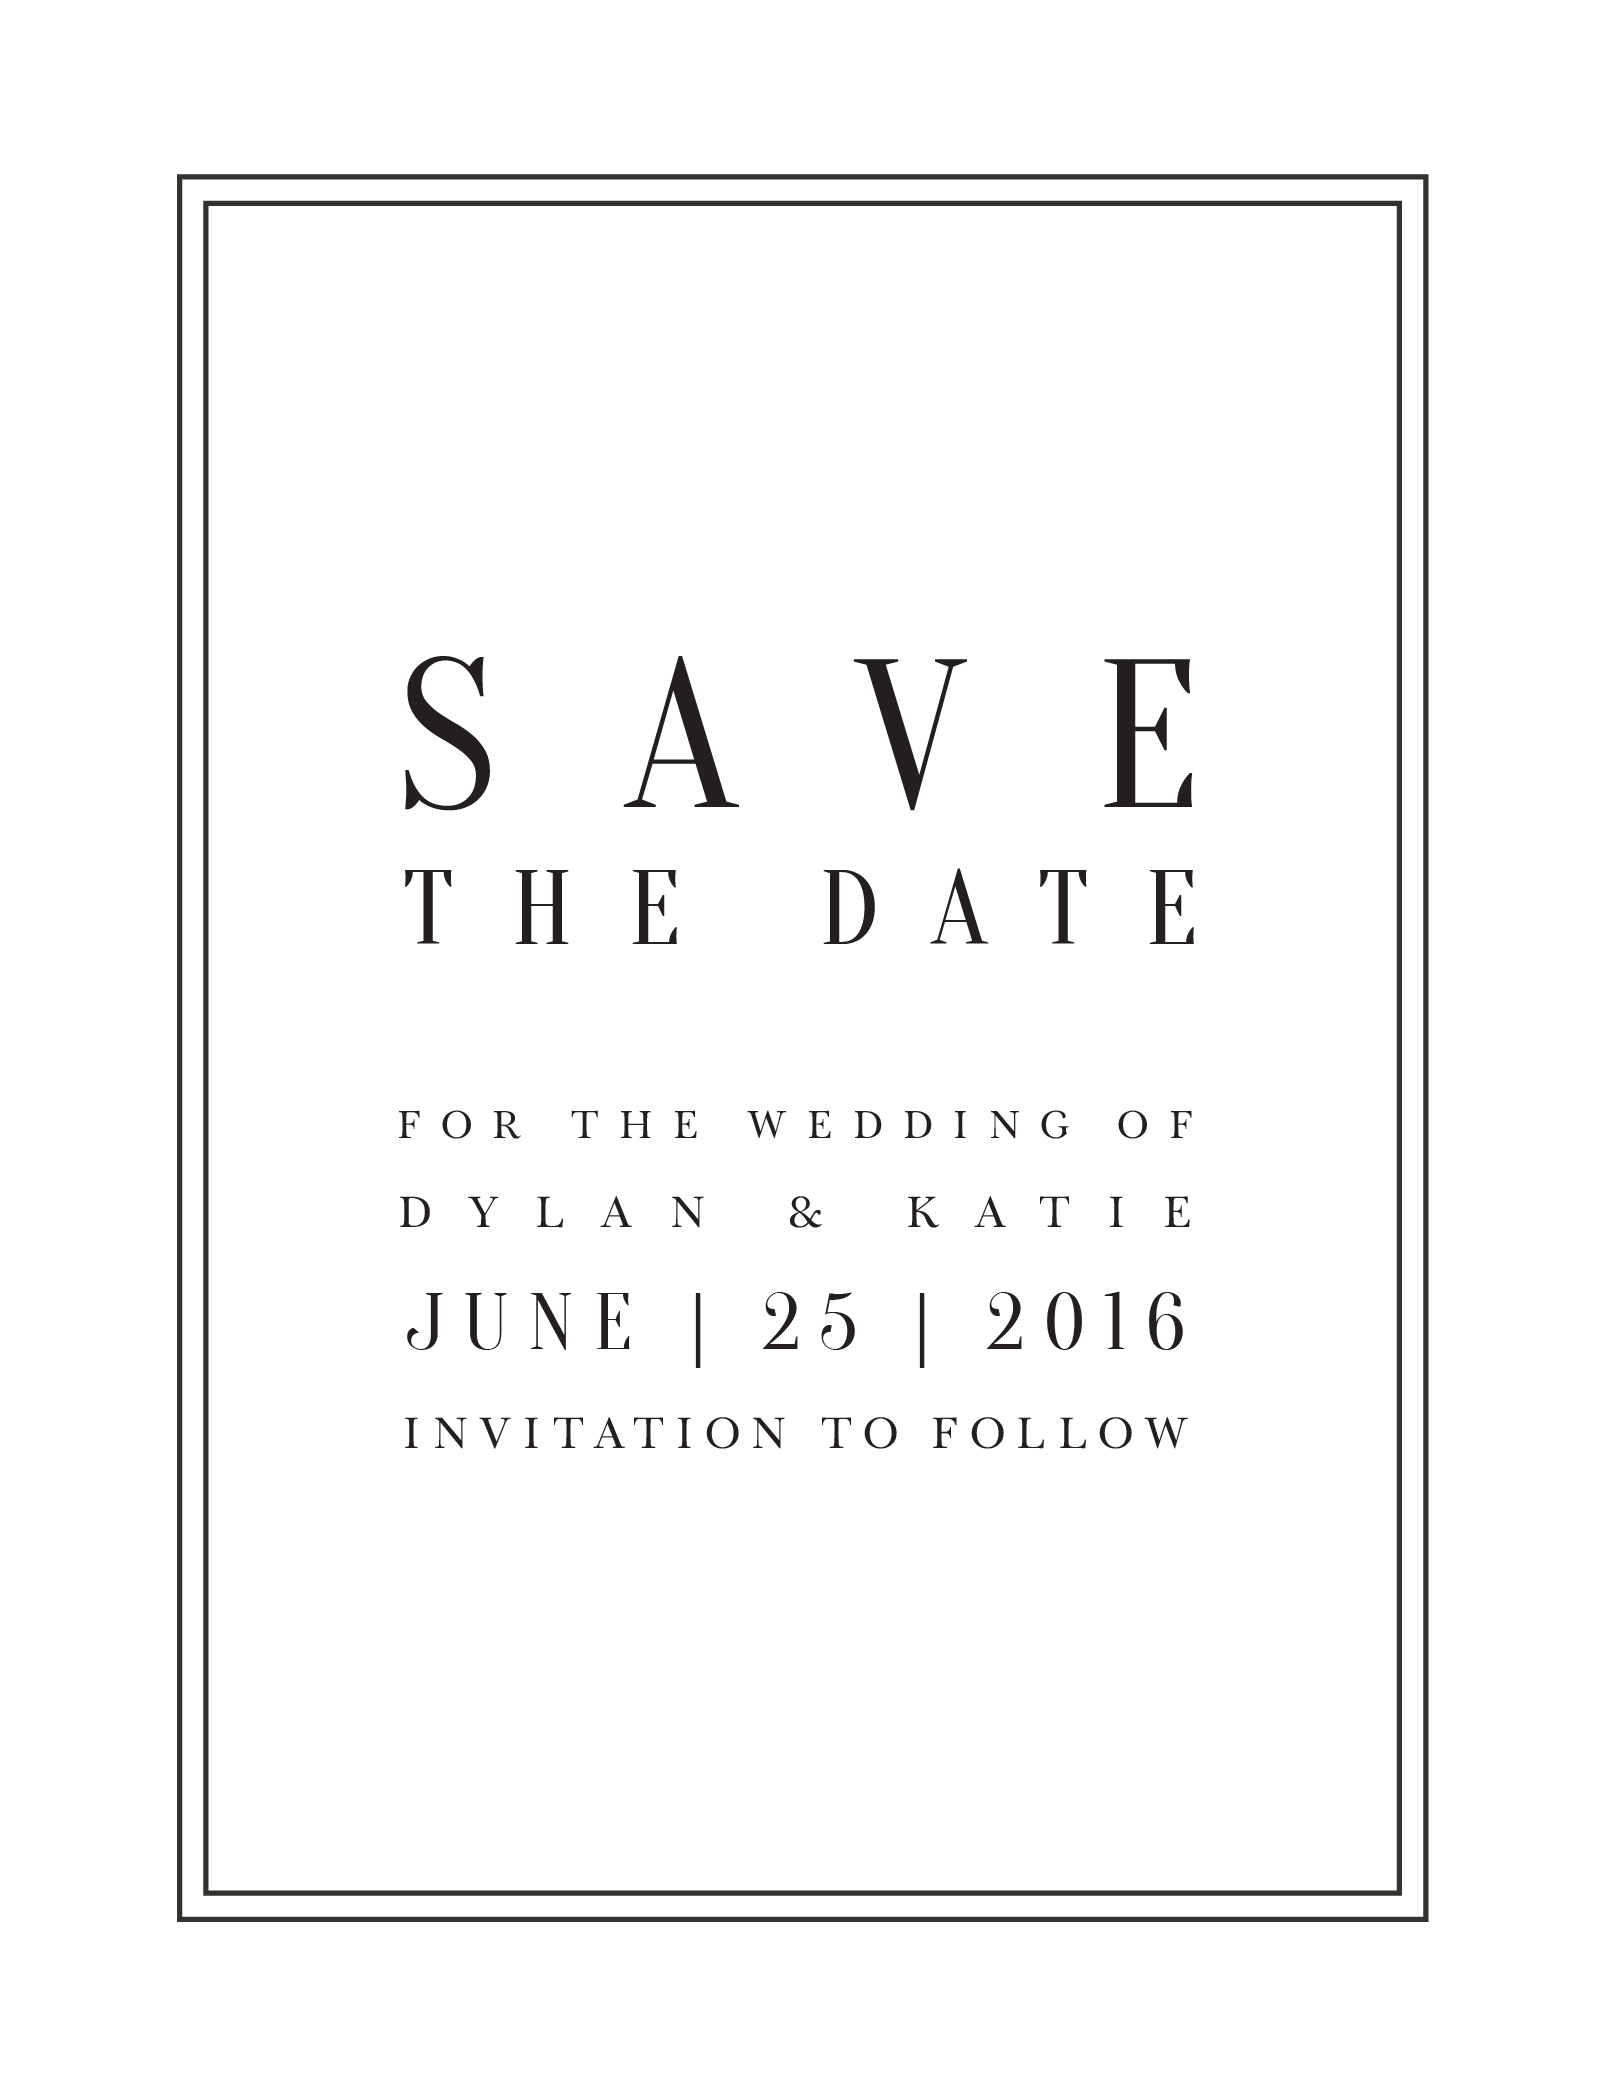 Classic Design - Save The Date